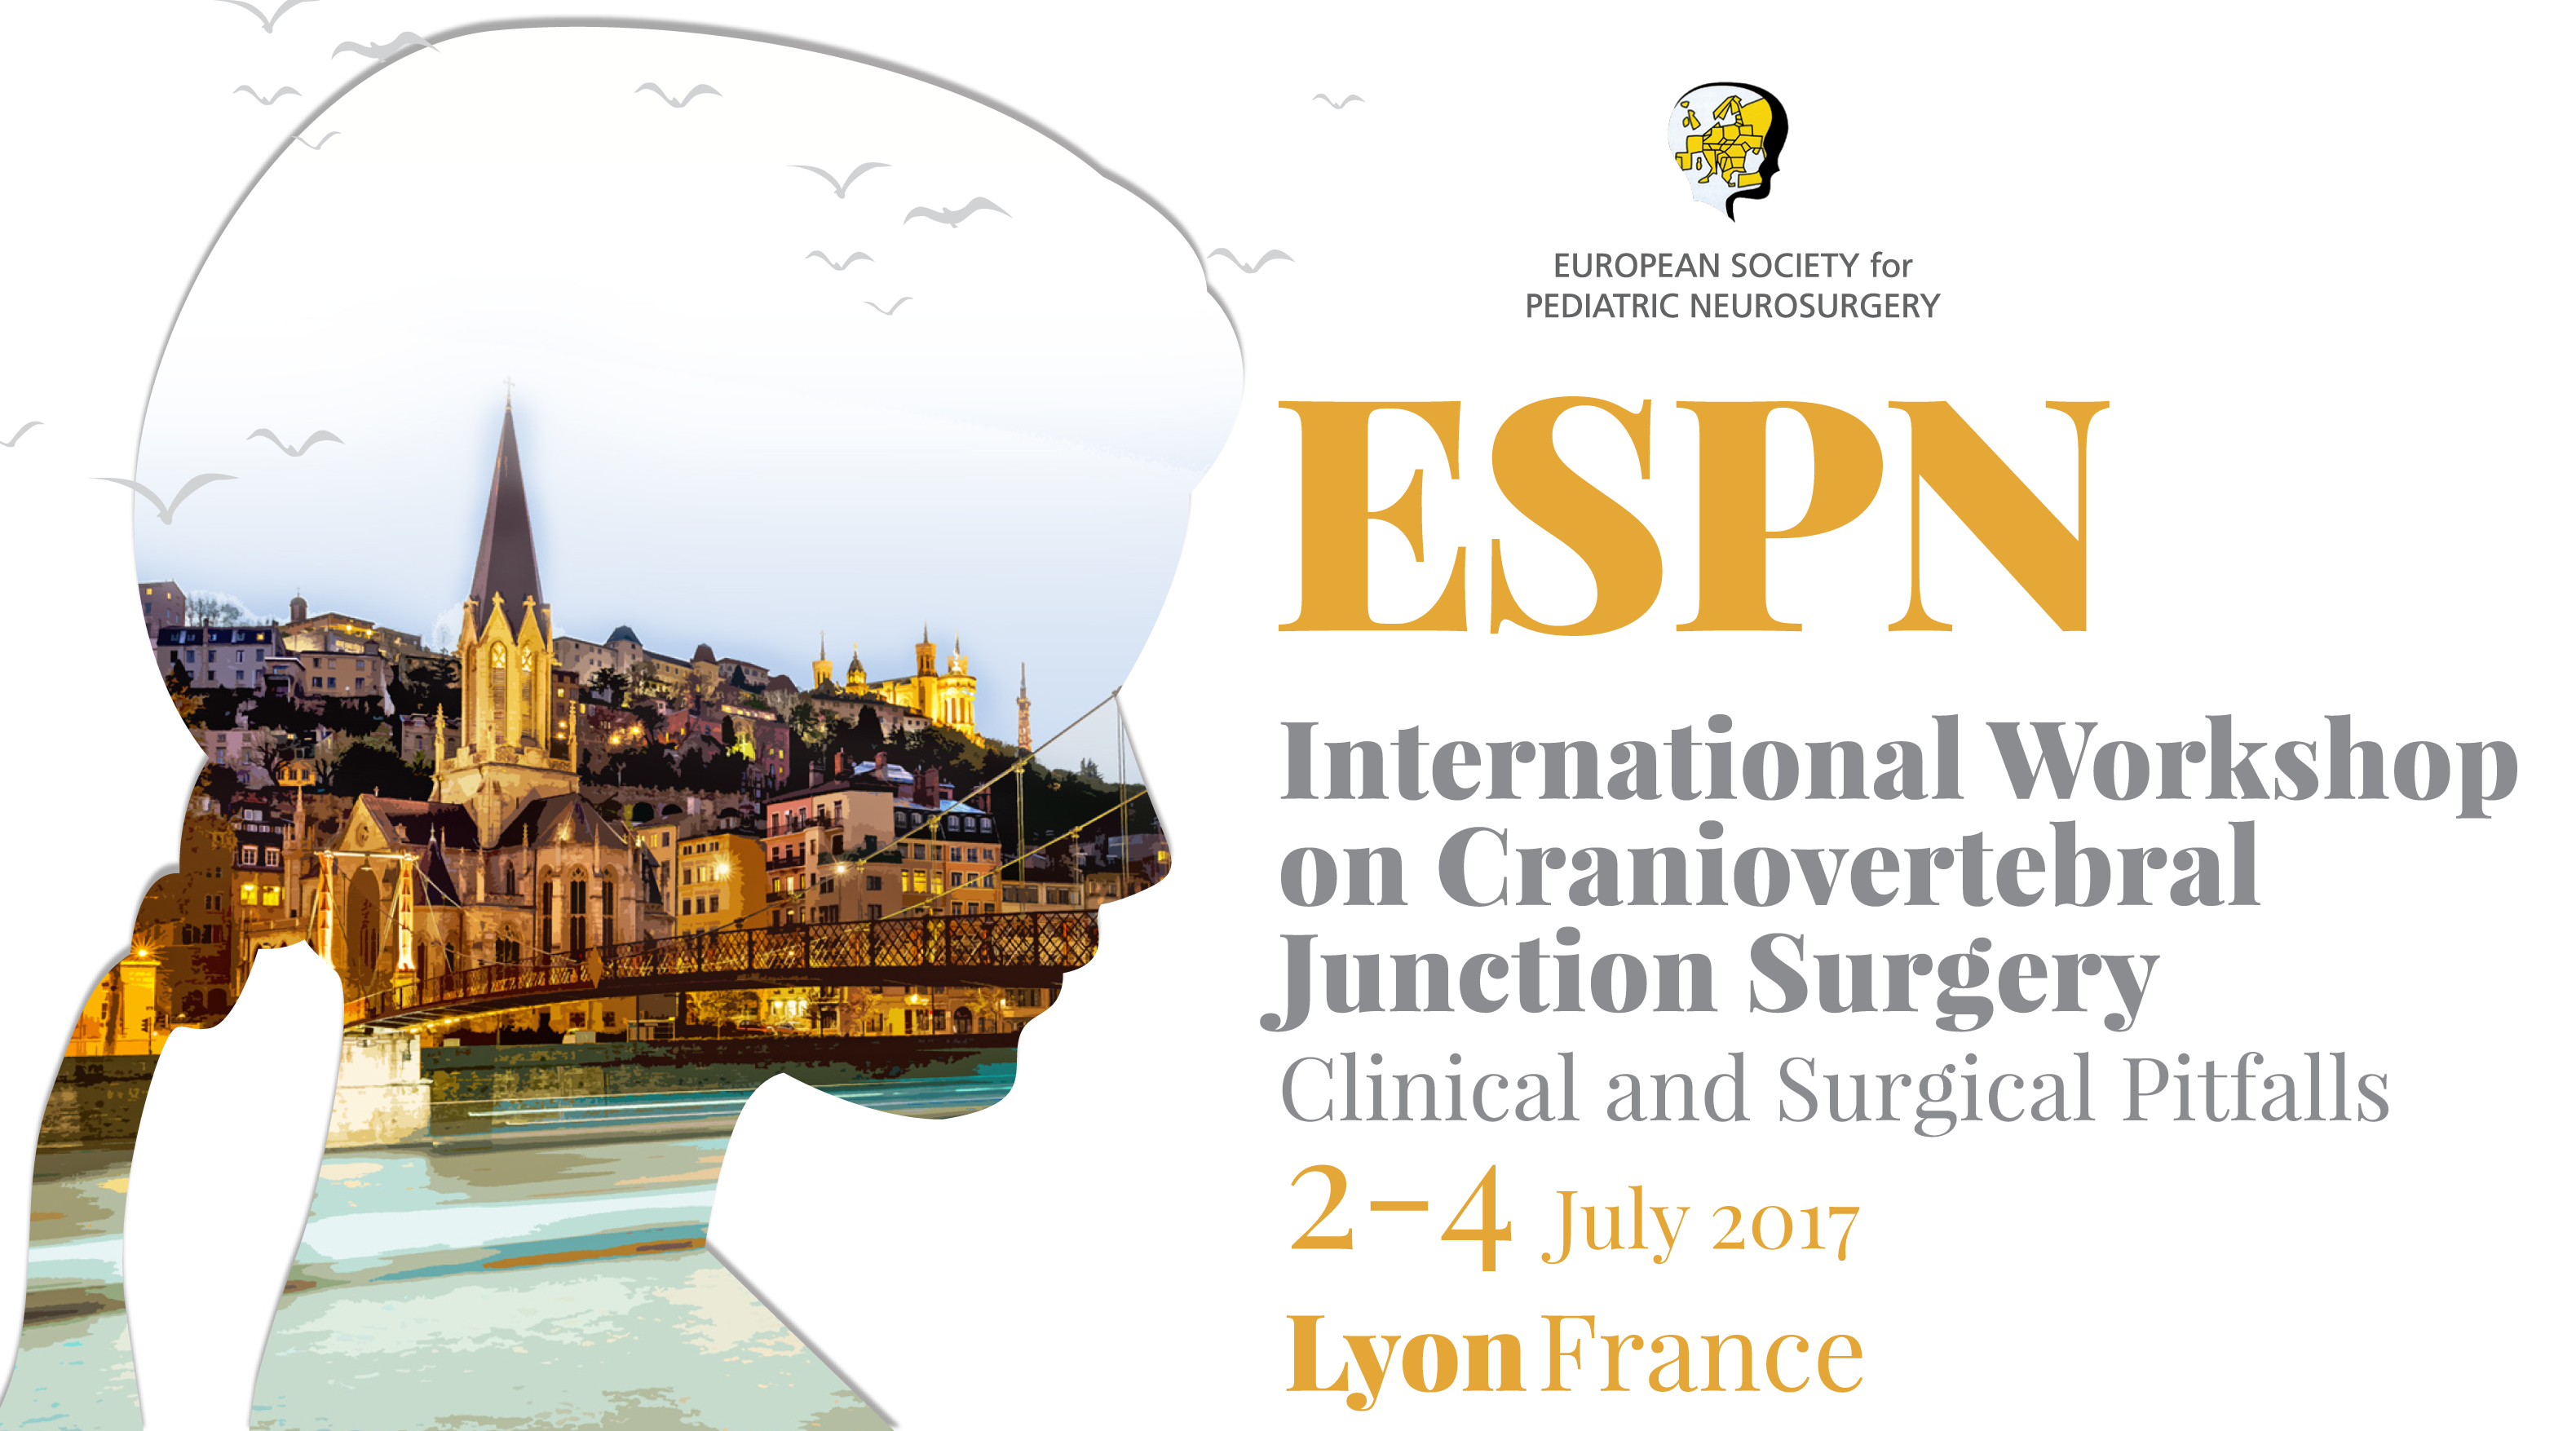 ESPN International Workshop on Craniovertebral Junction Surgery: Clinical and surgical pitfalls